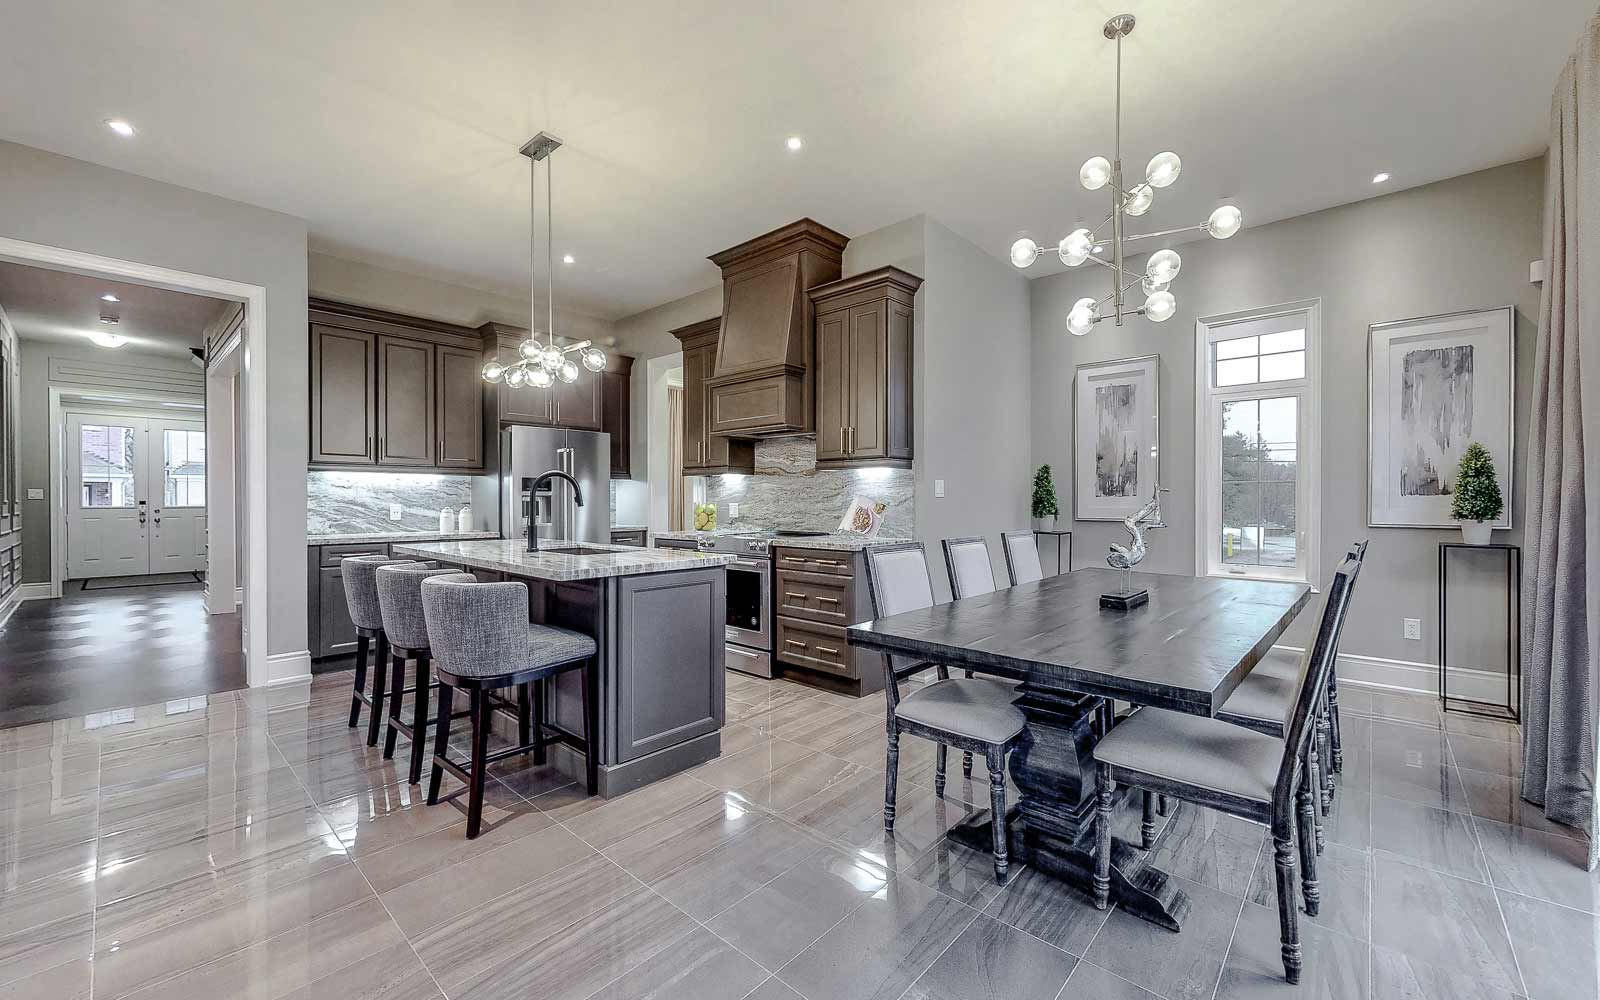 Amethyst Model Home Kitchen at Woodhaven in Aurora, ON